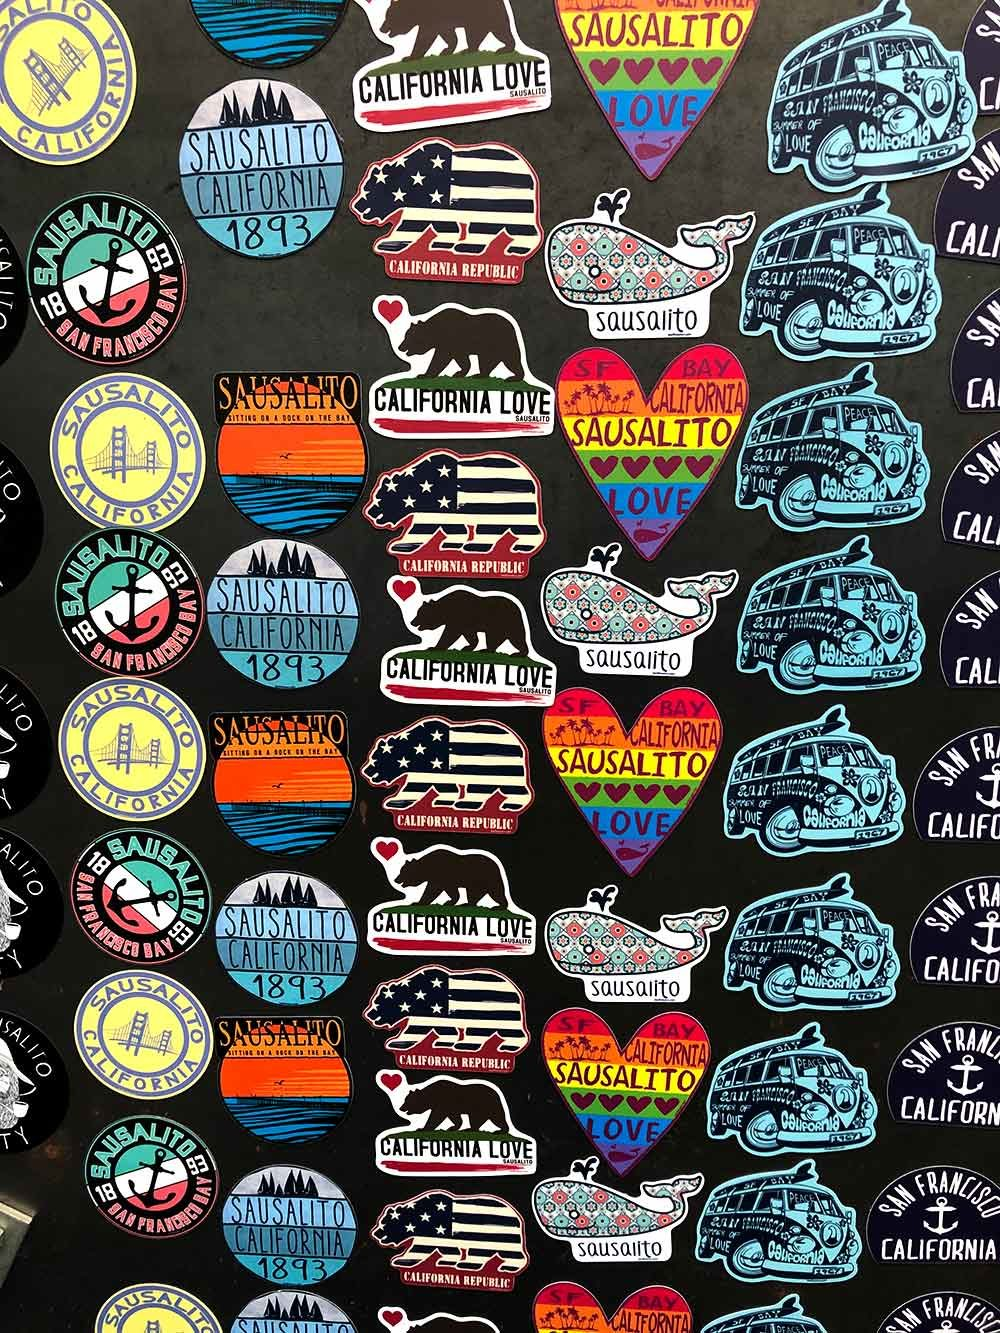 sausalito magnets